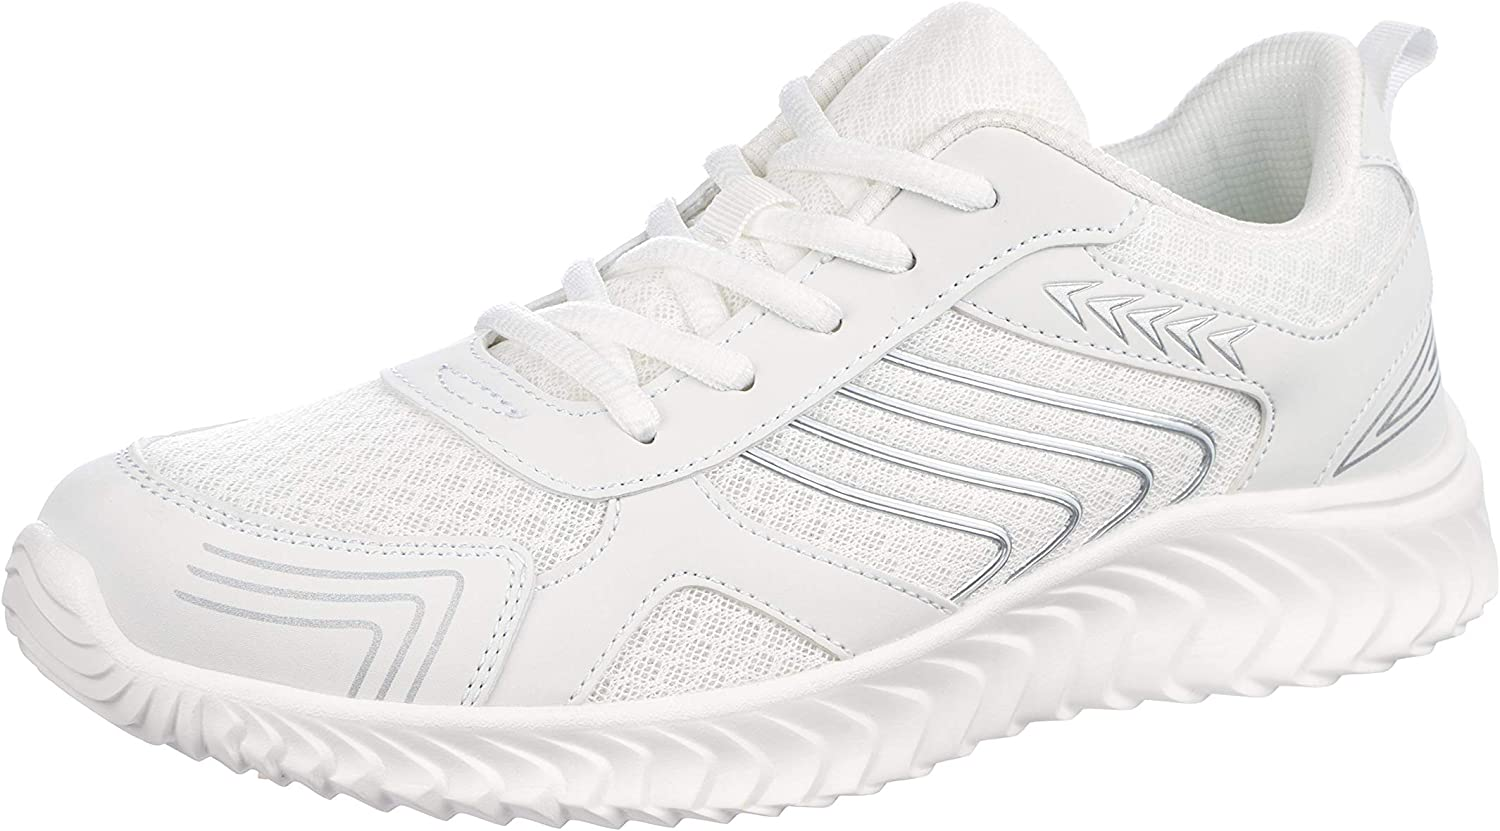 Akk Mens Sneakers Running Shoes - Gym Purchase Regular discount Light Comfortable Athletic